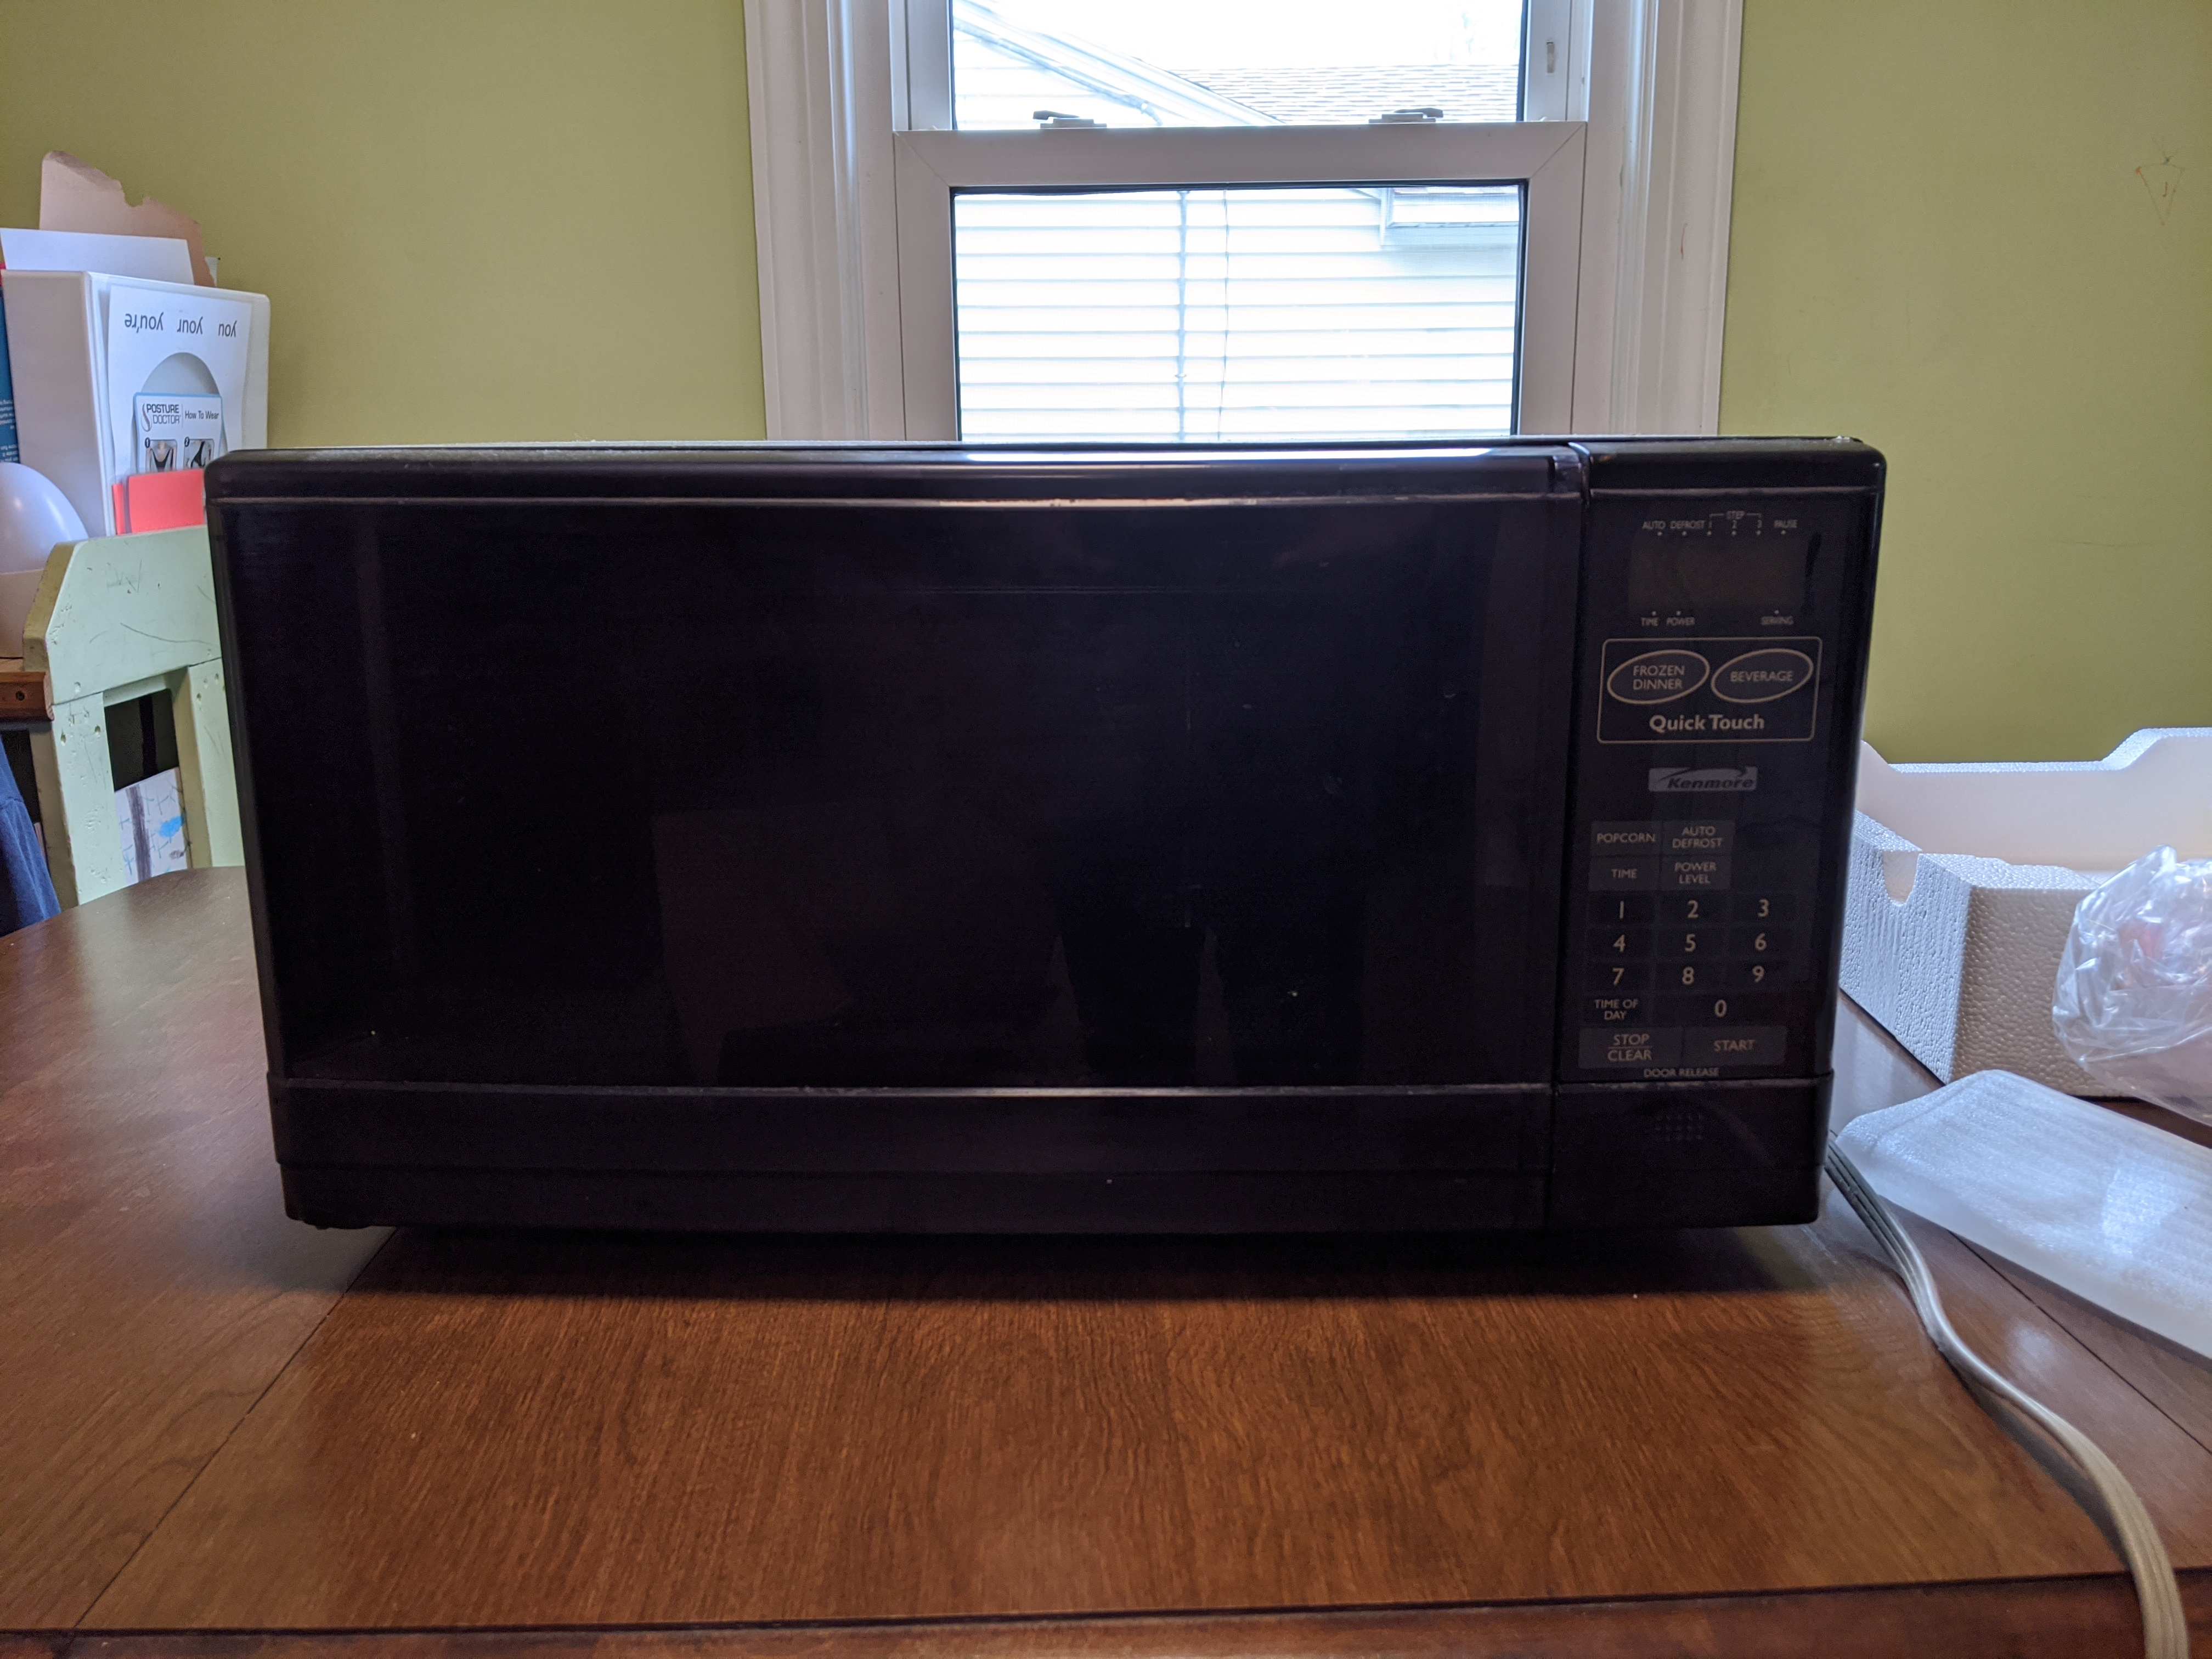 Old microwave